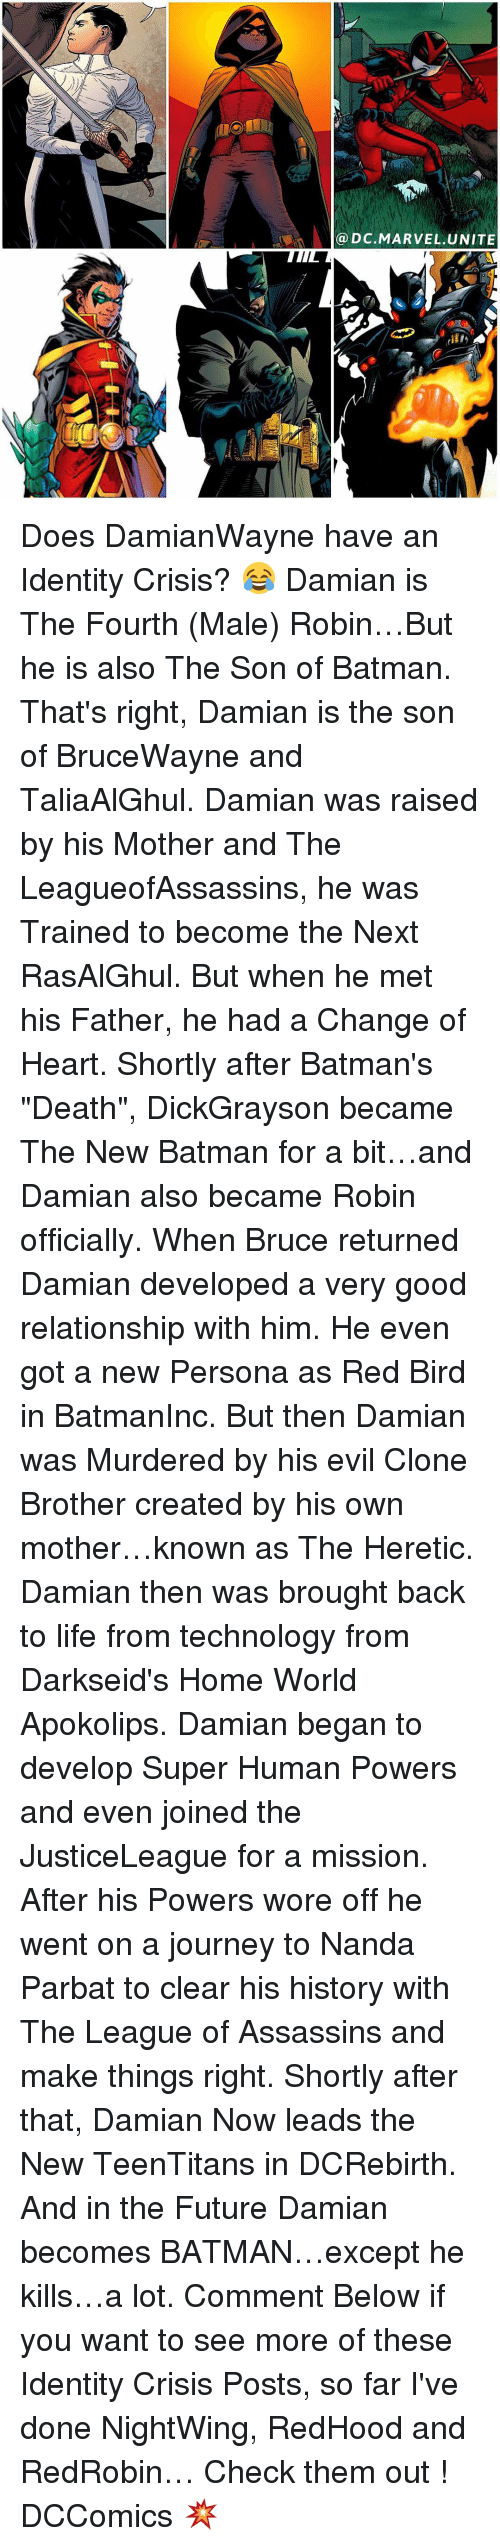 "Assassination, Batman, and Journey: a DC MARVEL UNITE Does DamianWayne have an Identity Crisis? 😂 Damian is The Fourth (Male) Robin…But he is also The Son of Batman. That's right, Damian is the son of BruceWayne and TaliaAlGhul. Damian was raised by his Mother and The LeagueofAssassins, he was Trained to become the Next RasAlGhul. But when he met his Father, he had a Change of Heart. Shortly after Batman's ""Death"", DickGrayson became The New Batman for a bit…and Damian also became Robin officially. When Bruce returned Damian developed a very good relationship with him. He even got a new Persona as Red Bird in BatmanInc. But then Damian was Murdered by his evil Clone Brother created by his own mother…known as The Heretic. Damian then was brought back to life from technology from Darkseid's Home World Apokolips. Damian began to develop Super Human Powers and even joined the JusticeLeague for a mission. After his Powers wore off he went on a journey to Nanda Parbat to clear his history with The League of Assassins and make things right. Shortly after that, Damian Now leads the New TeenTitans in DCRebirth. And in the Future Damian becomes BATMAN…except he kills…a lot. Comment Below if you want to see more of these Identity Crisis Posts, so far I've done NightWing, RedHood and RedRobin… Check them out ! DCComics 💥"